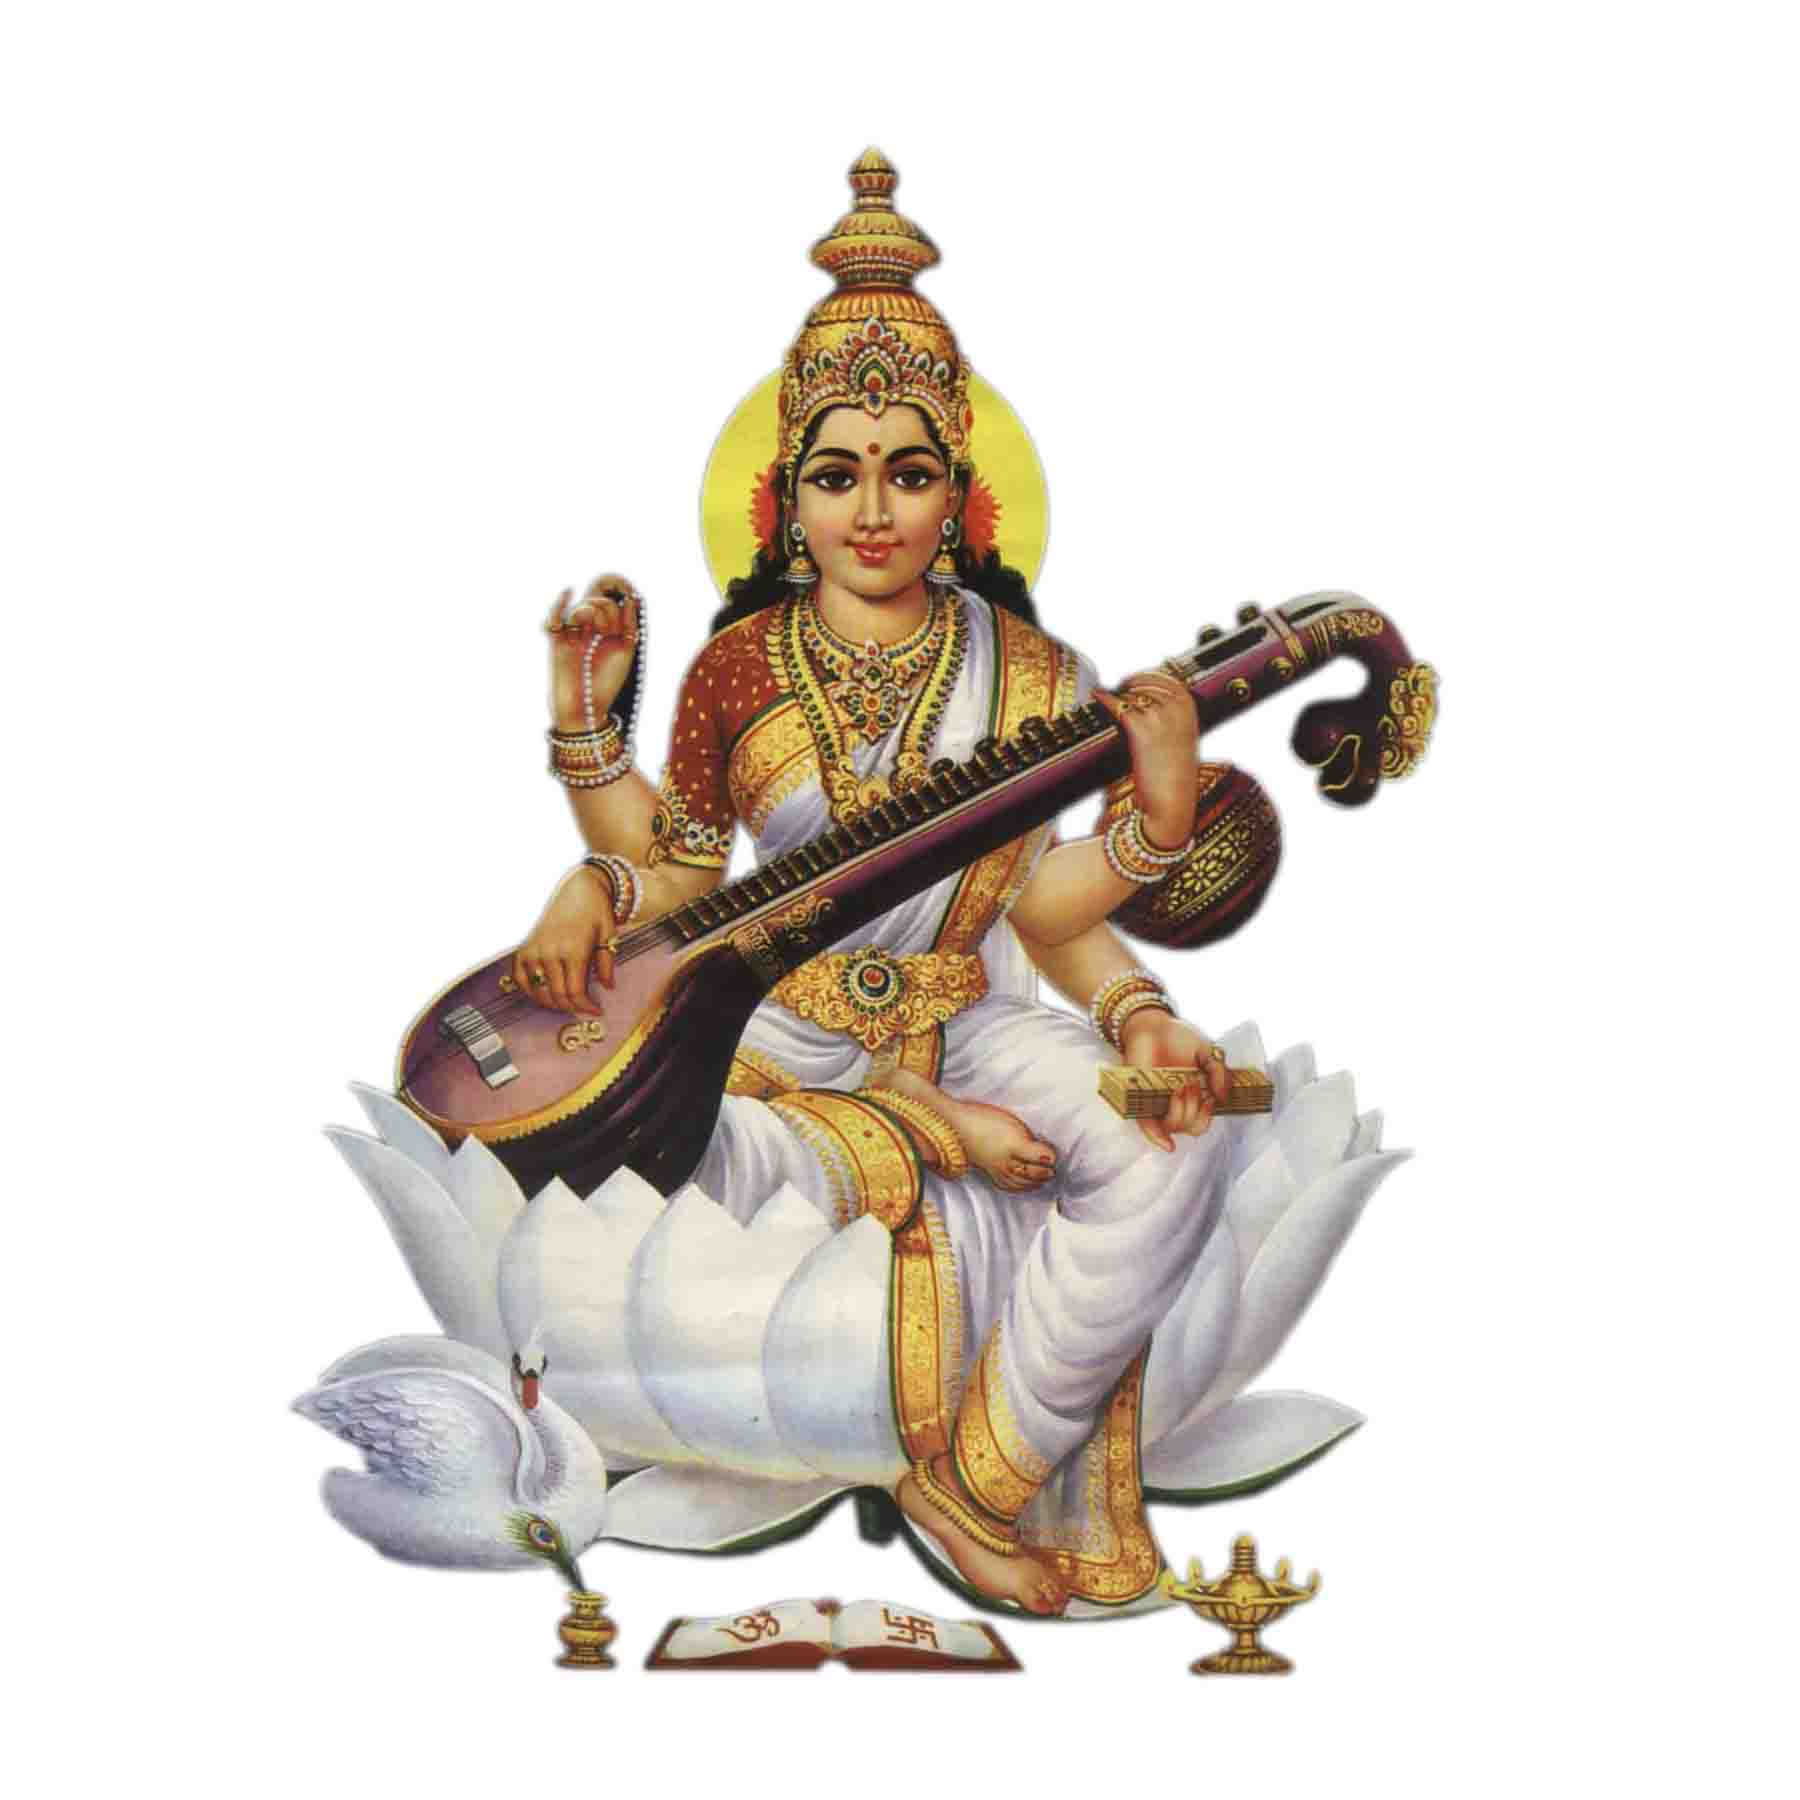 माँ सरस्वती – Maa Saraswati Is The Hindu Goddess Of Knowledge